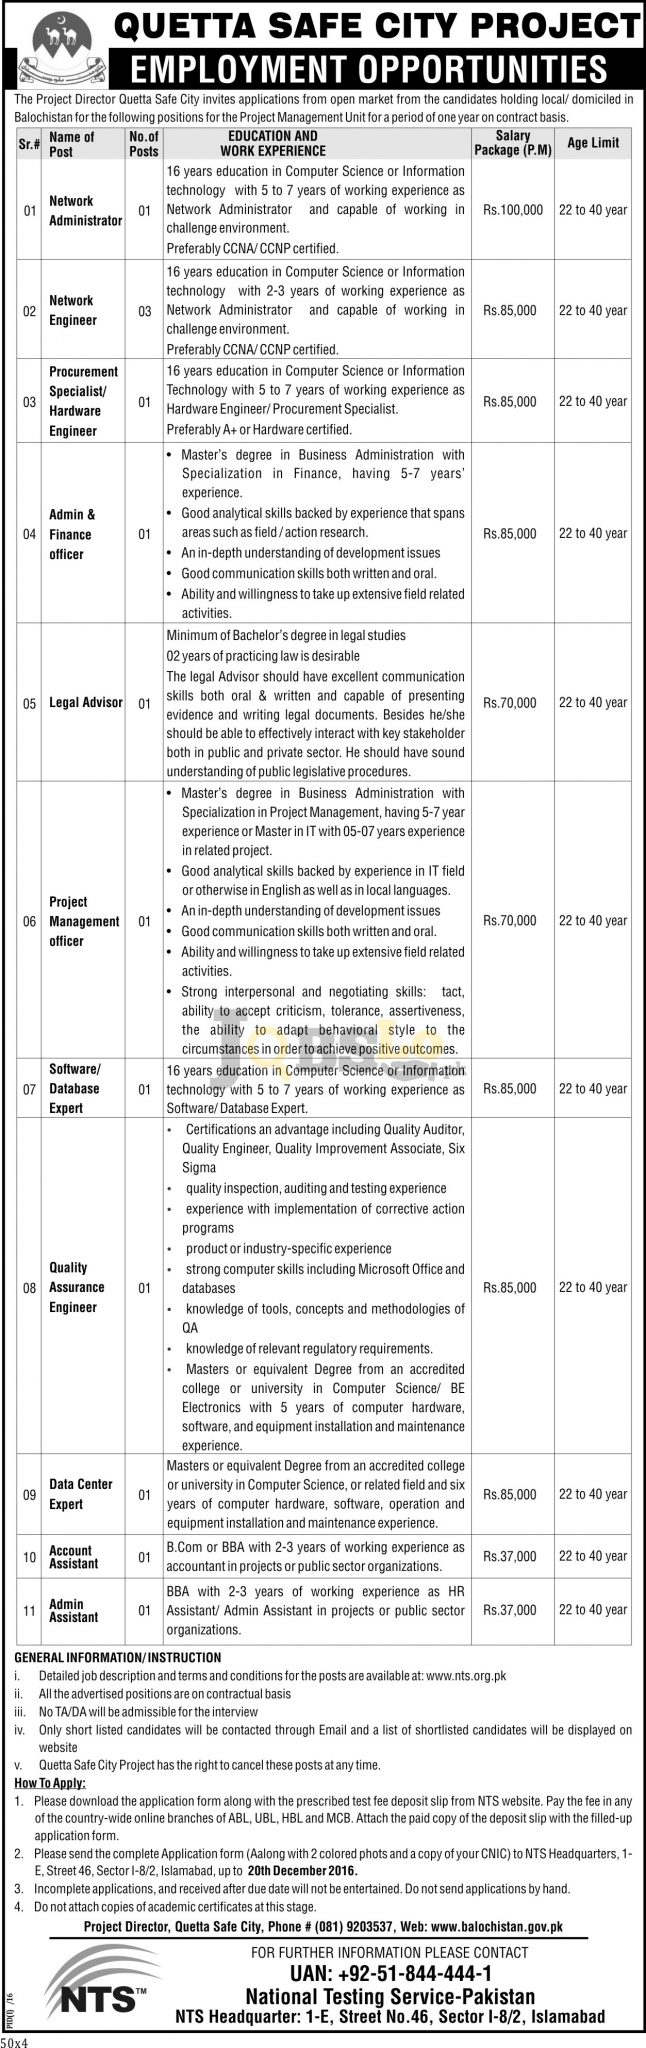 Quetta Safe City Jobs